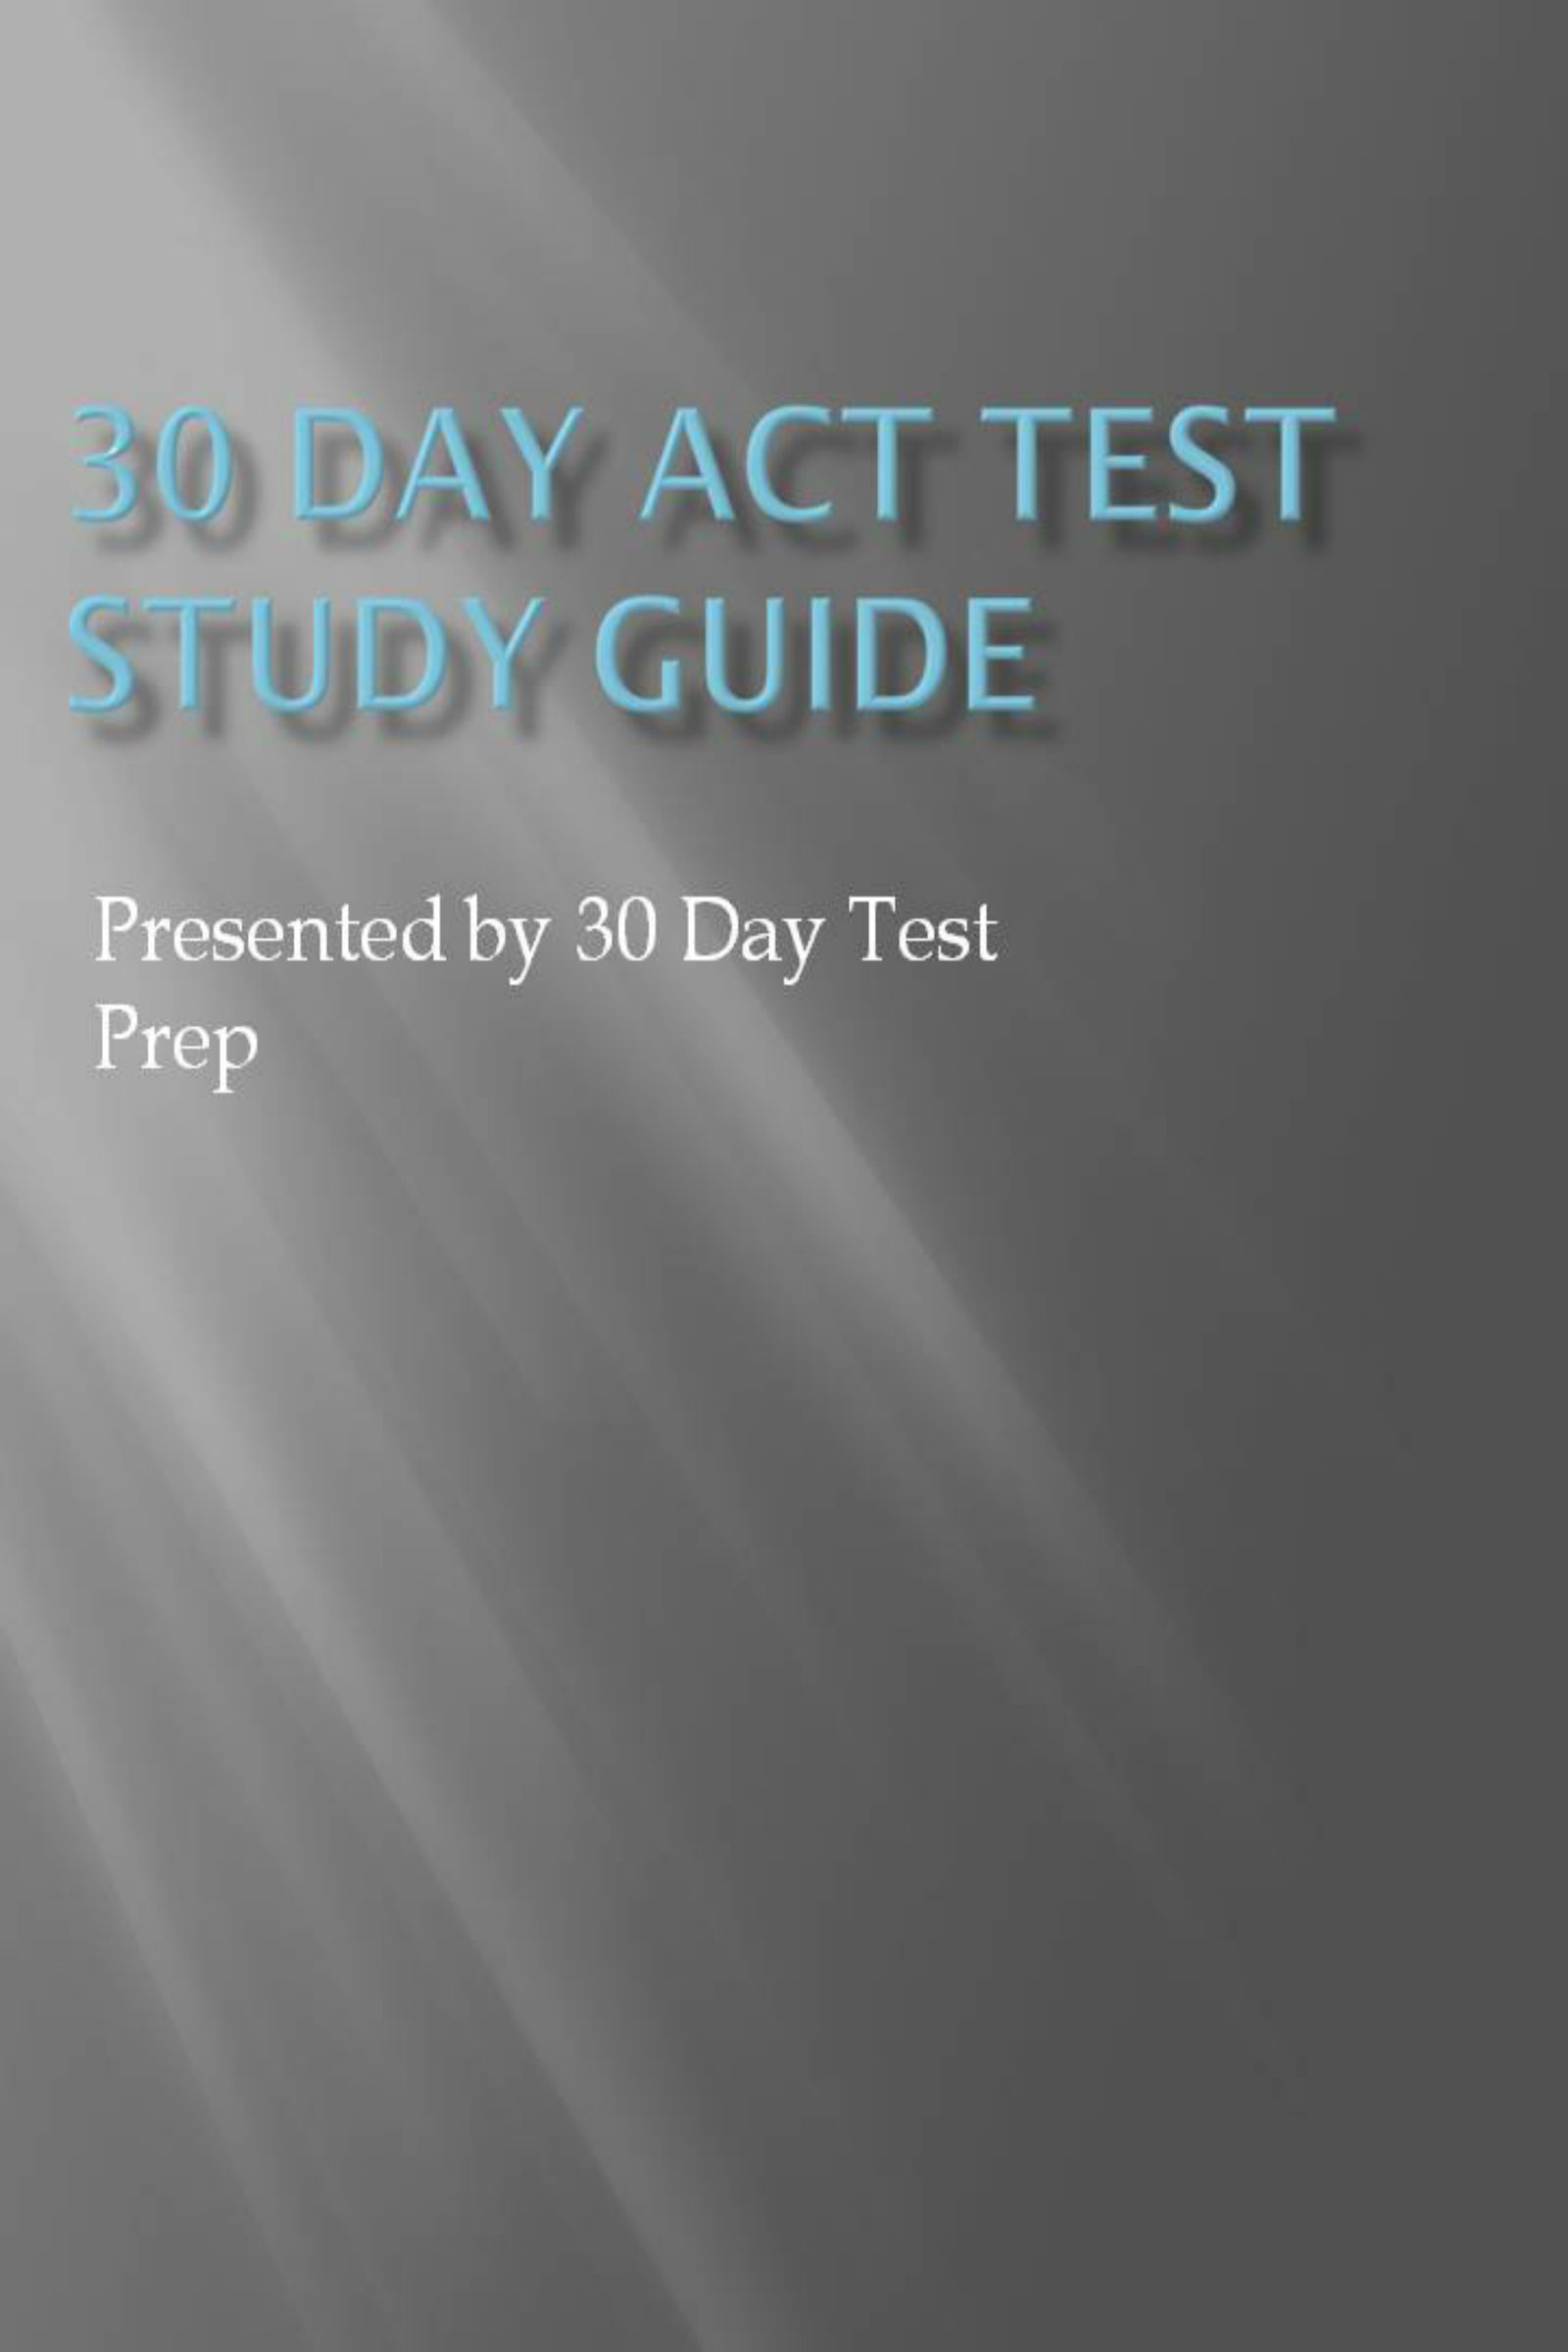 30 Day ACT Test Study Guide